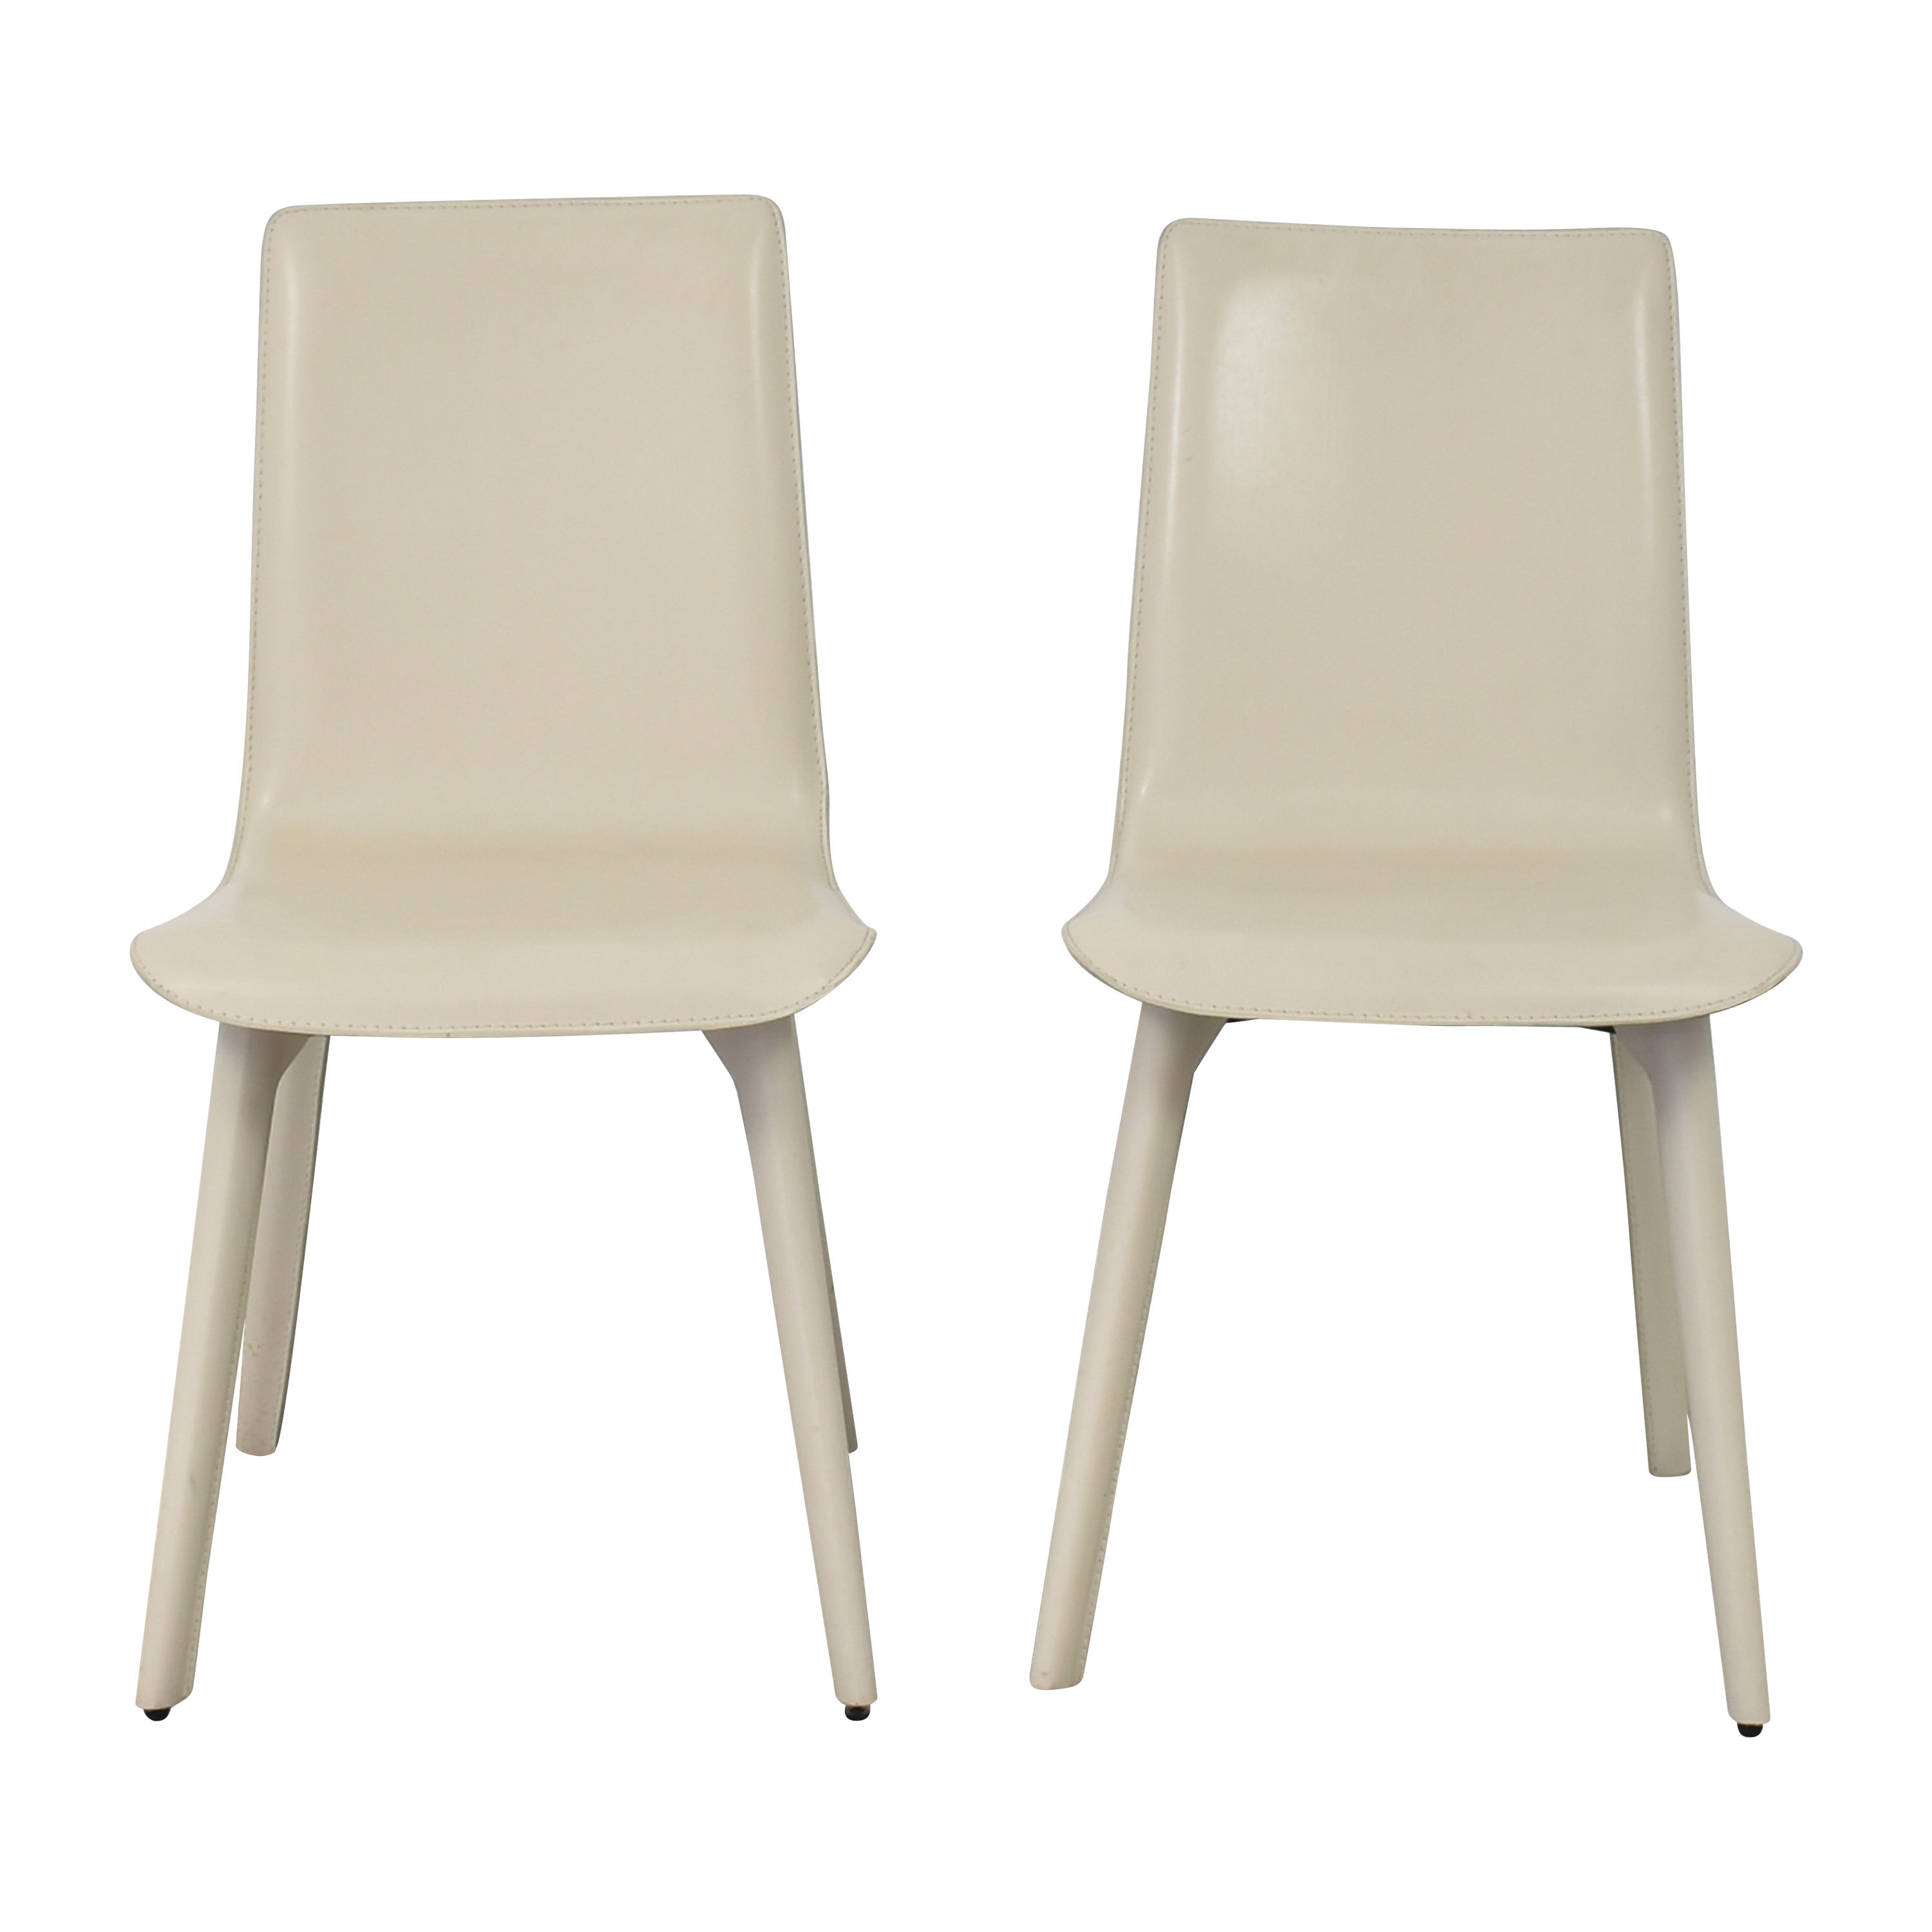 shop Room & Board by Maria Yee Hirsch Dining Chairs Room & Board Chairs